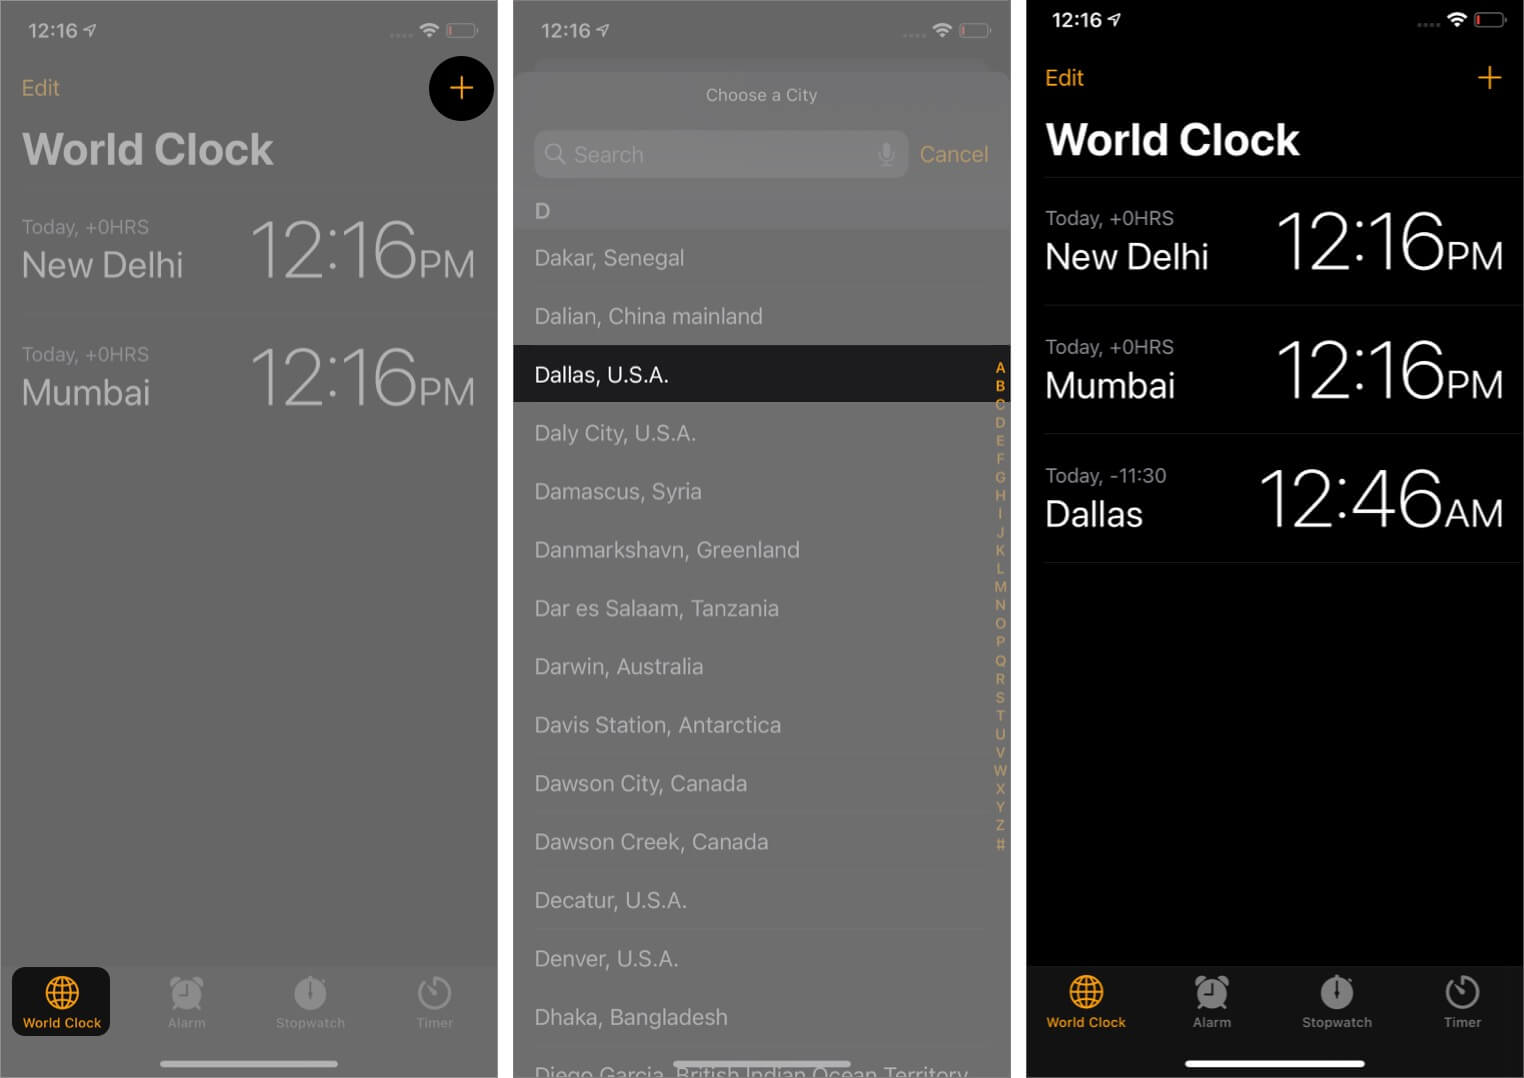 Open iPhone Clock App and Add Desired City to World Clock